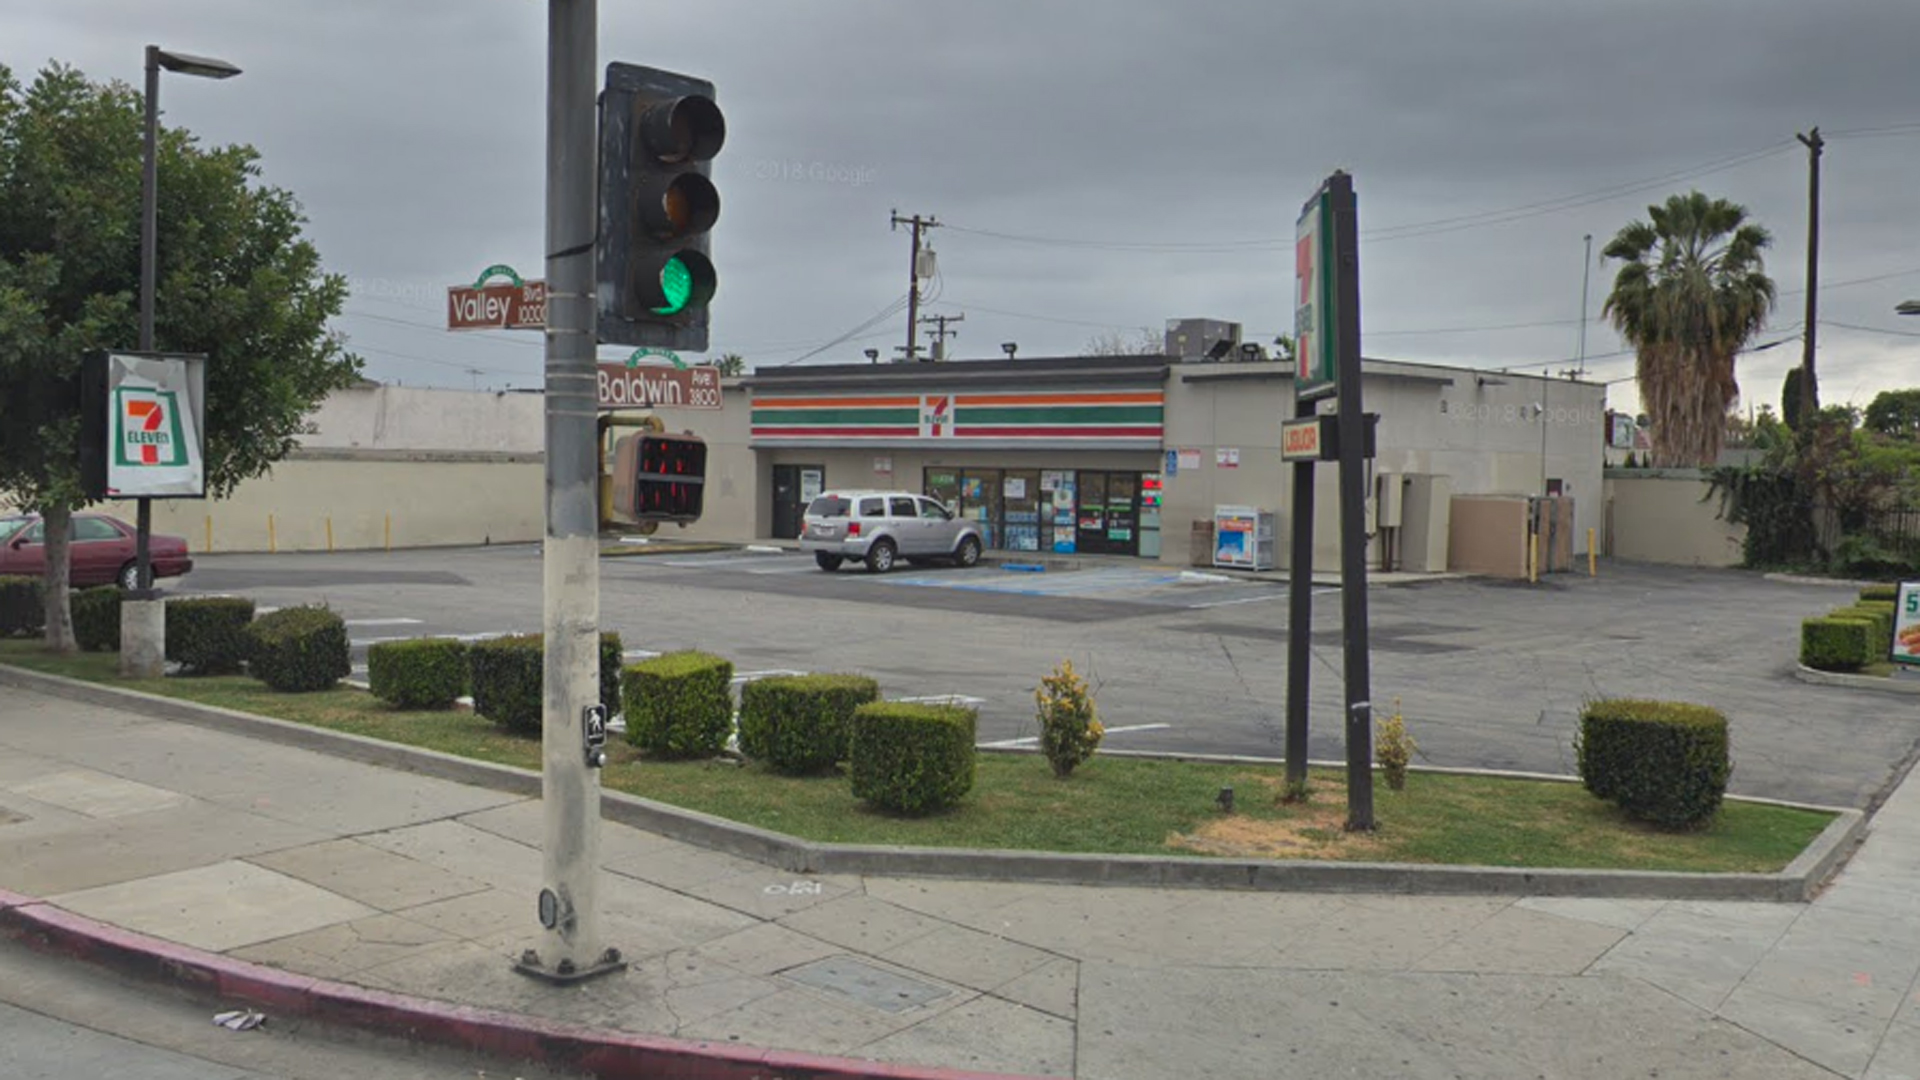 A 7-Eleven store at the corner of Valley Boulevard and Baldwin Avenue in El Monte, as pictured in a Google Street View image in May of 2018.